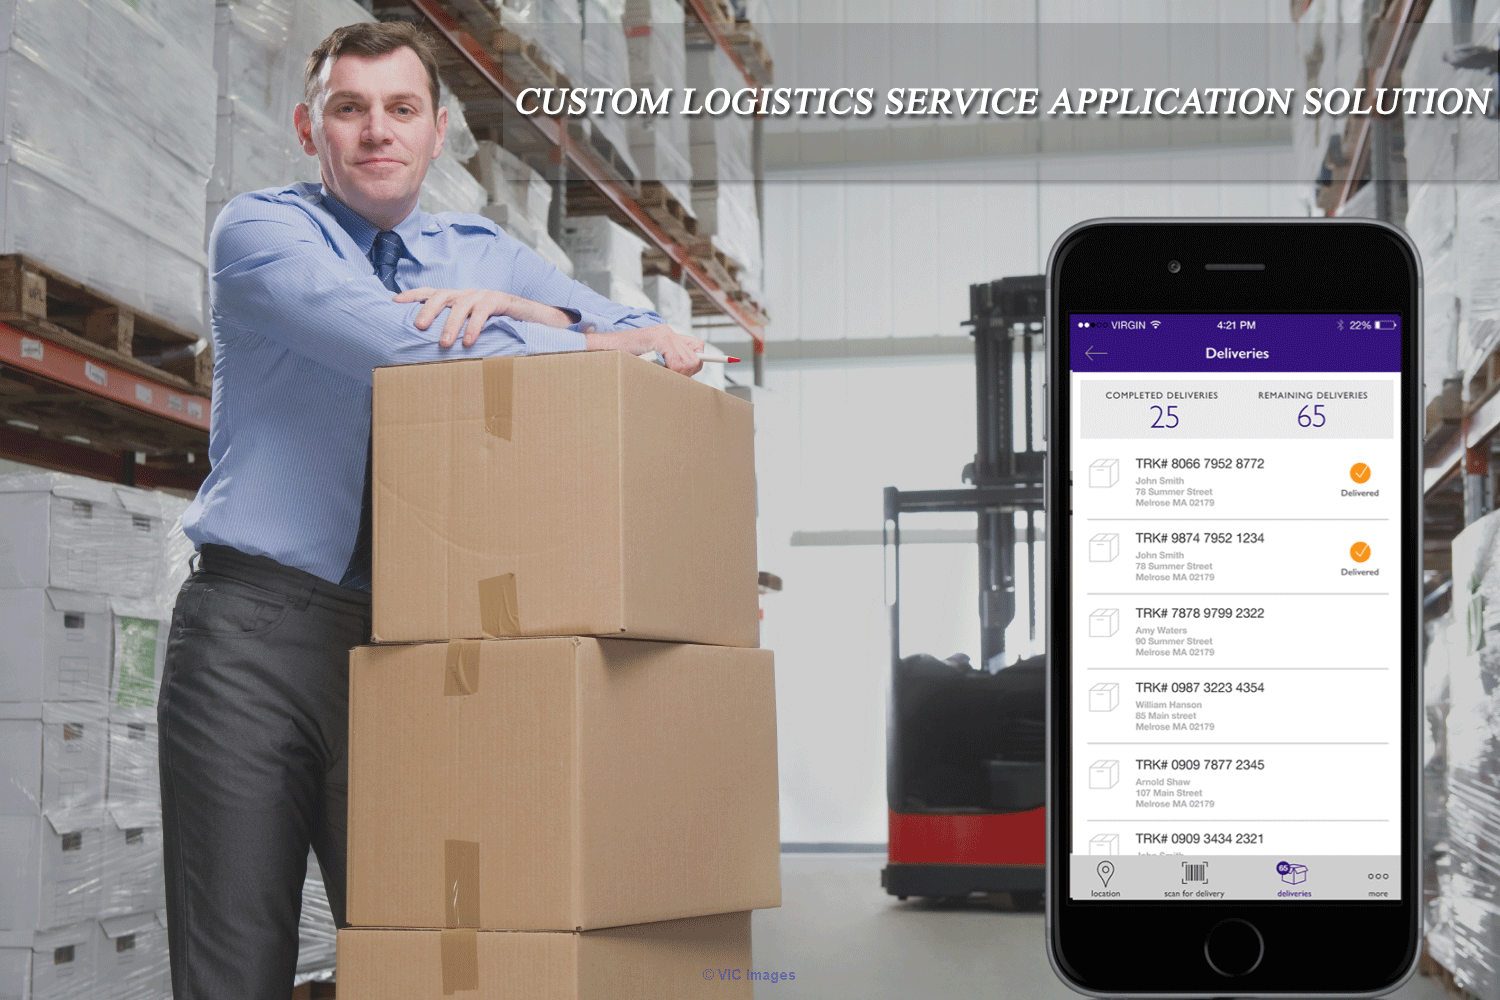 Custom logistics mobile application solution End to End - Bacancy Tech calgary